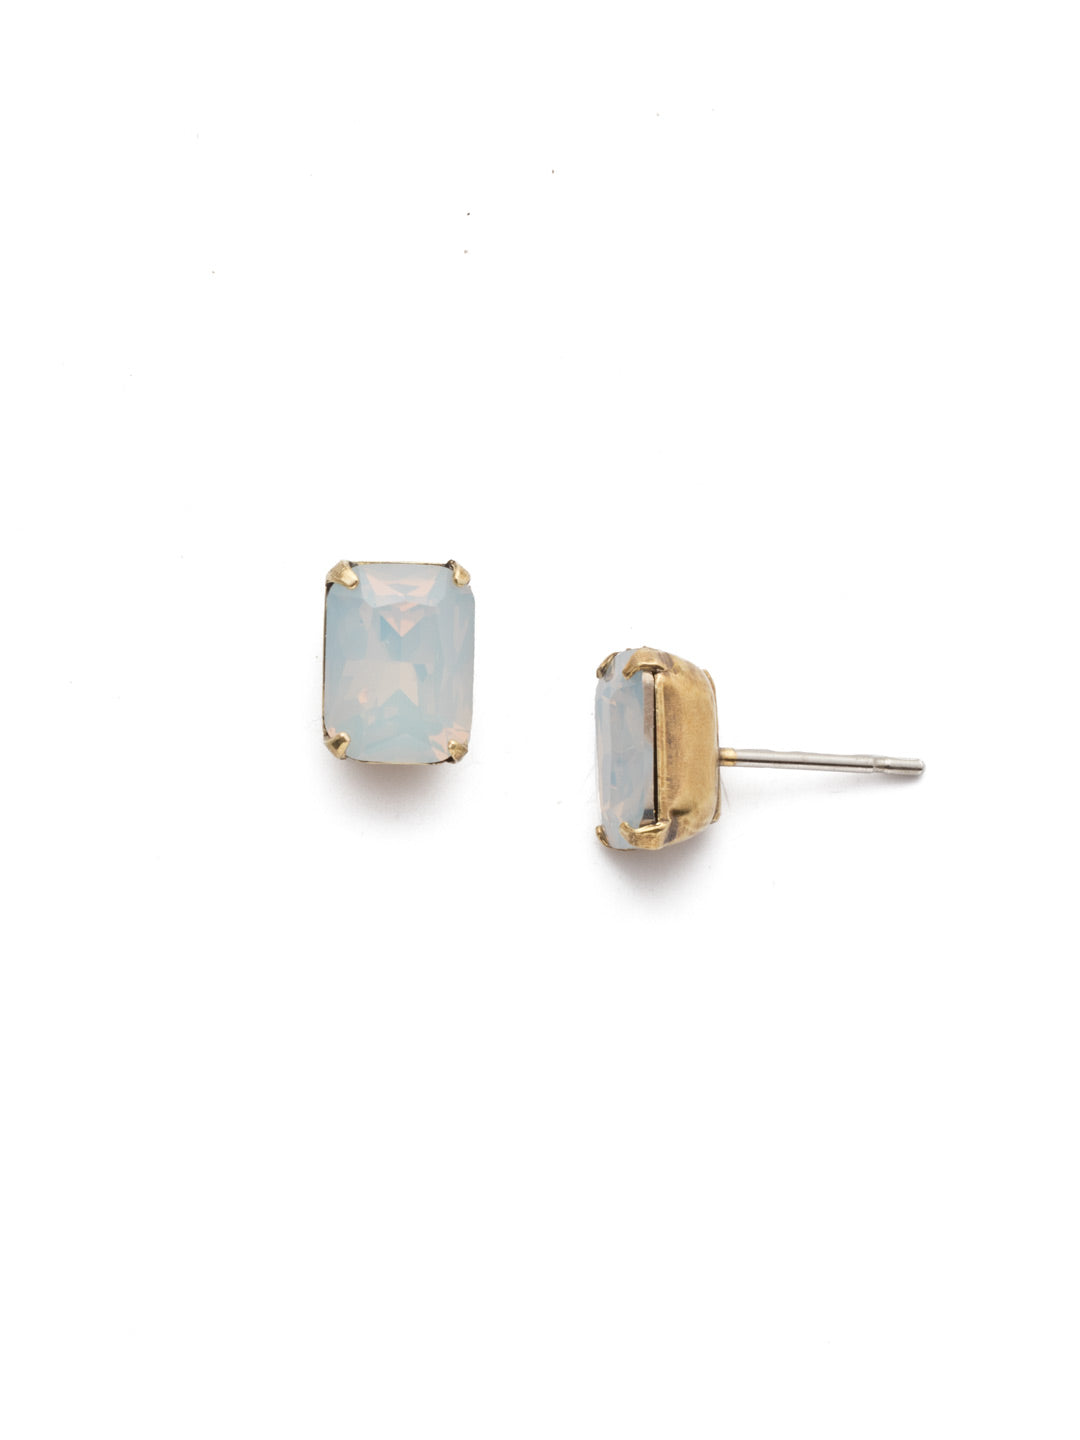 Mini Emerald Cut Stud Earrings - EBY42AGWO